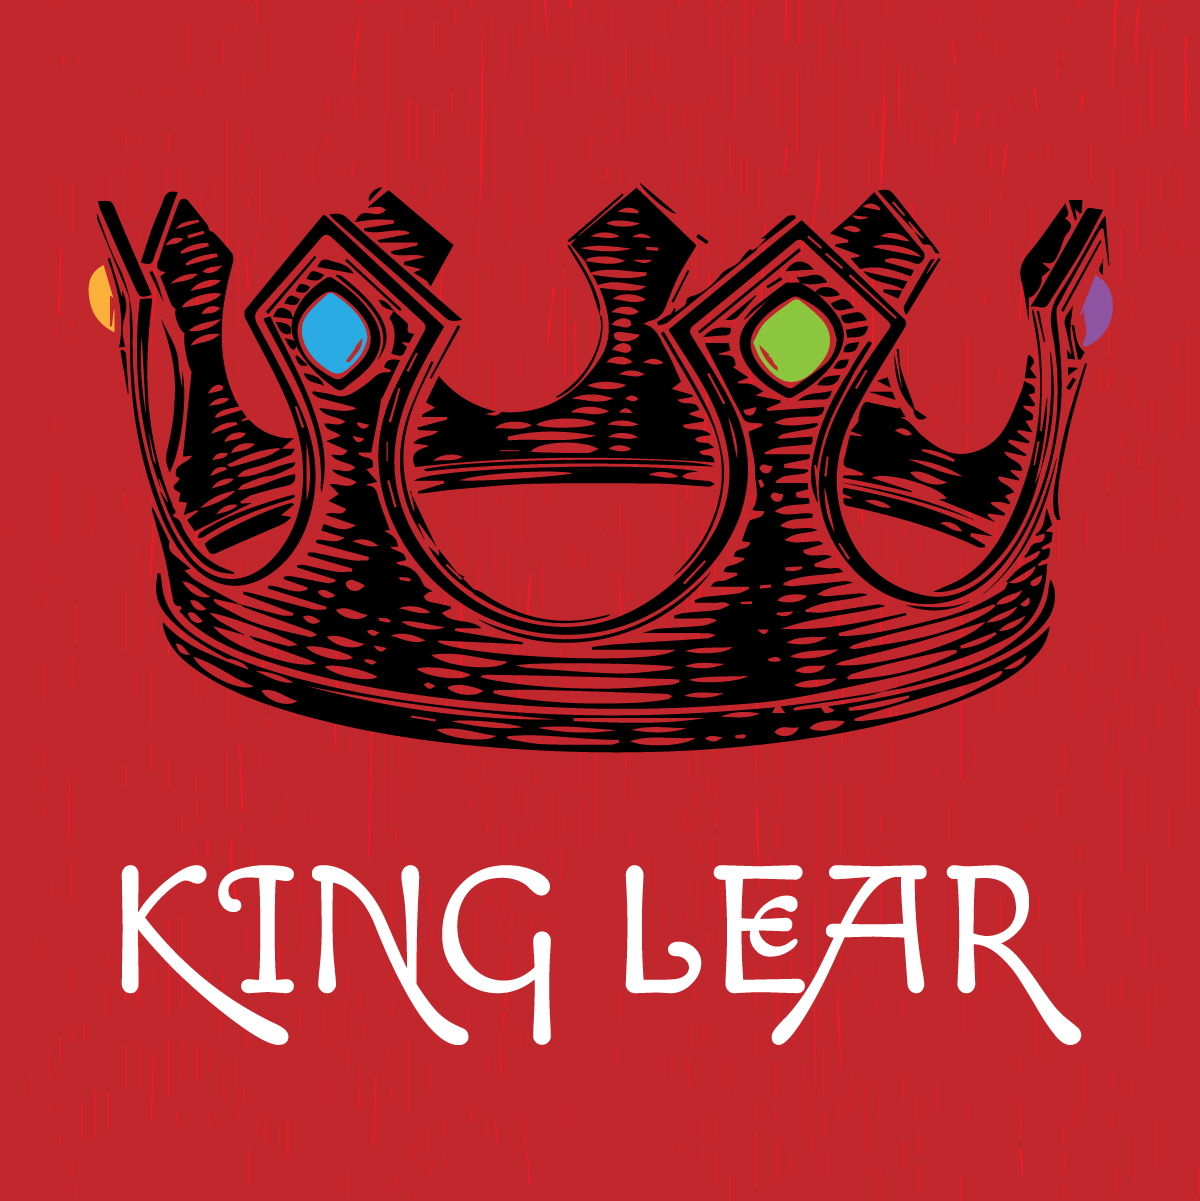 King Lear - black crown on red background graphic